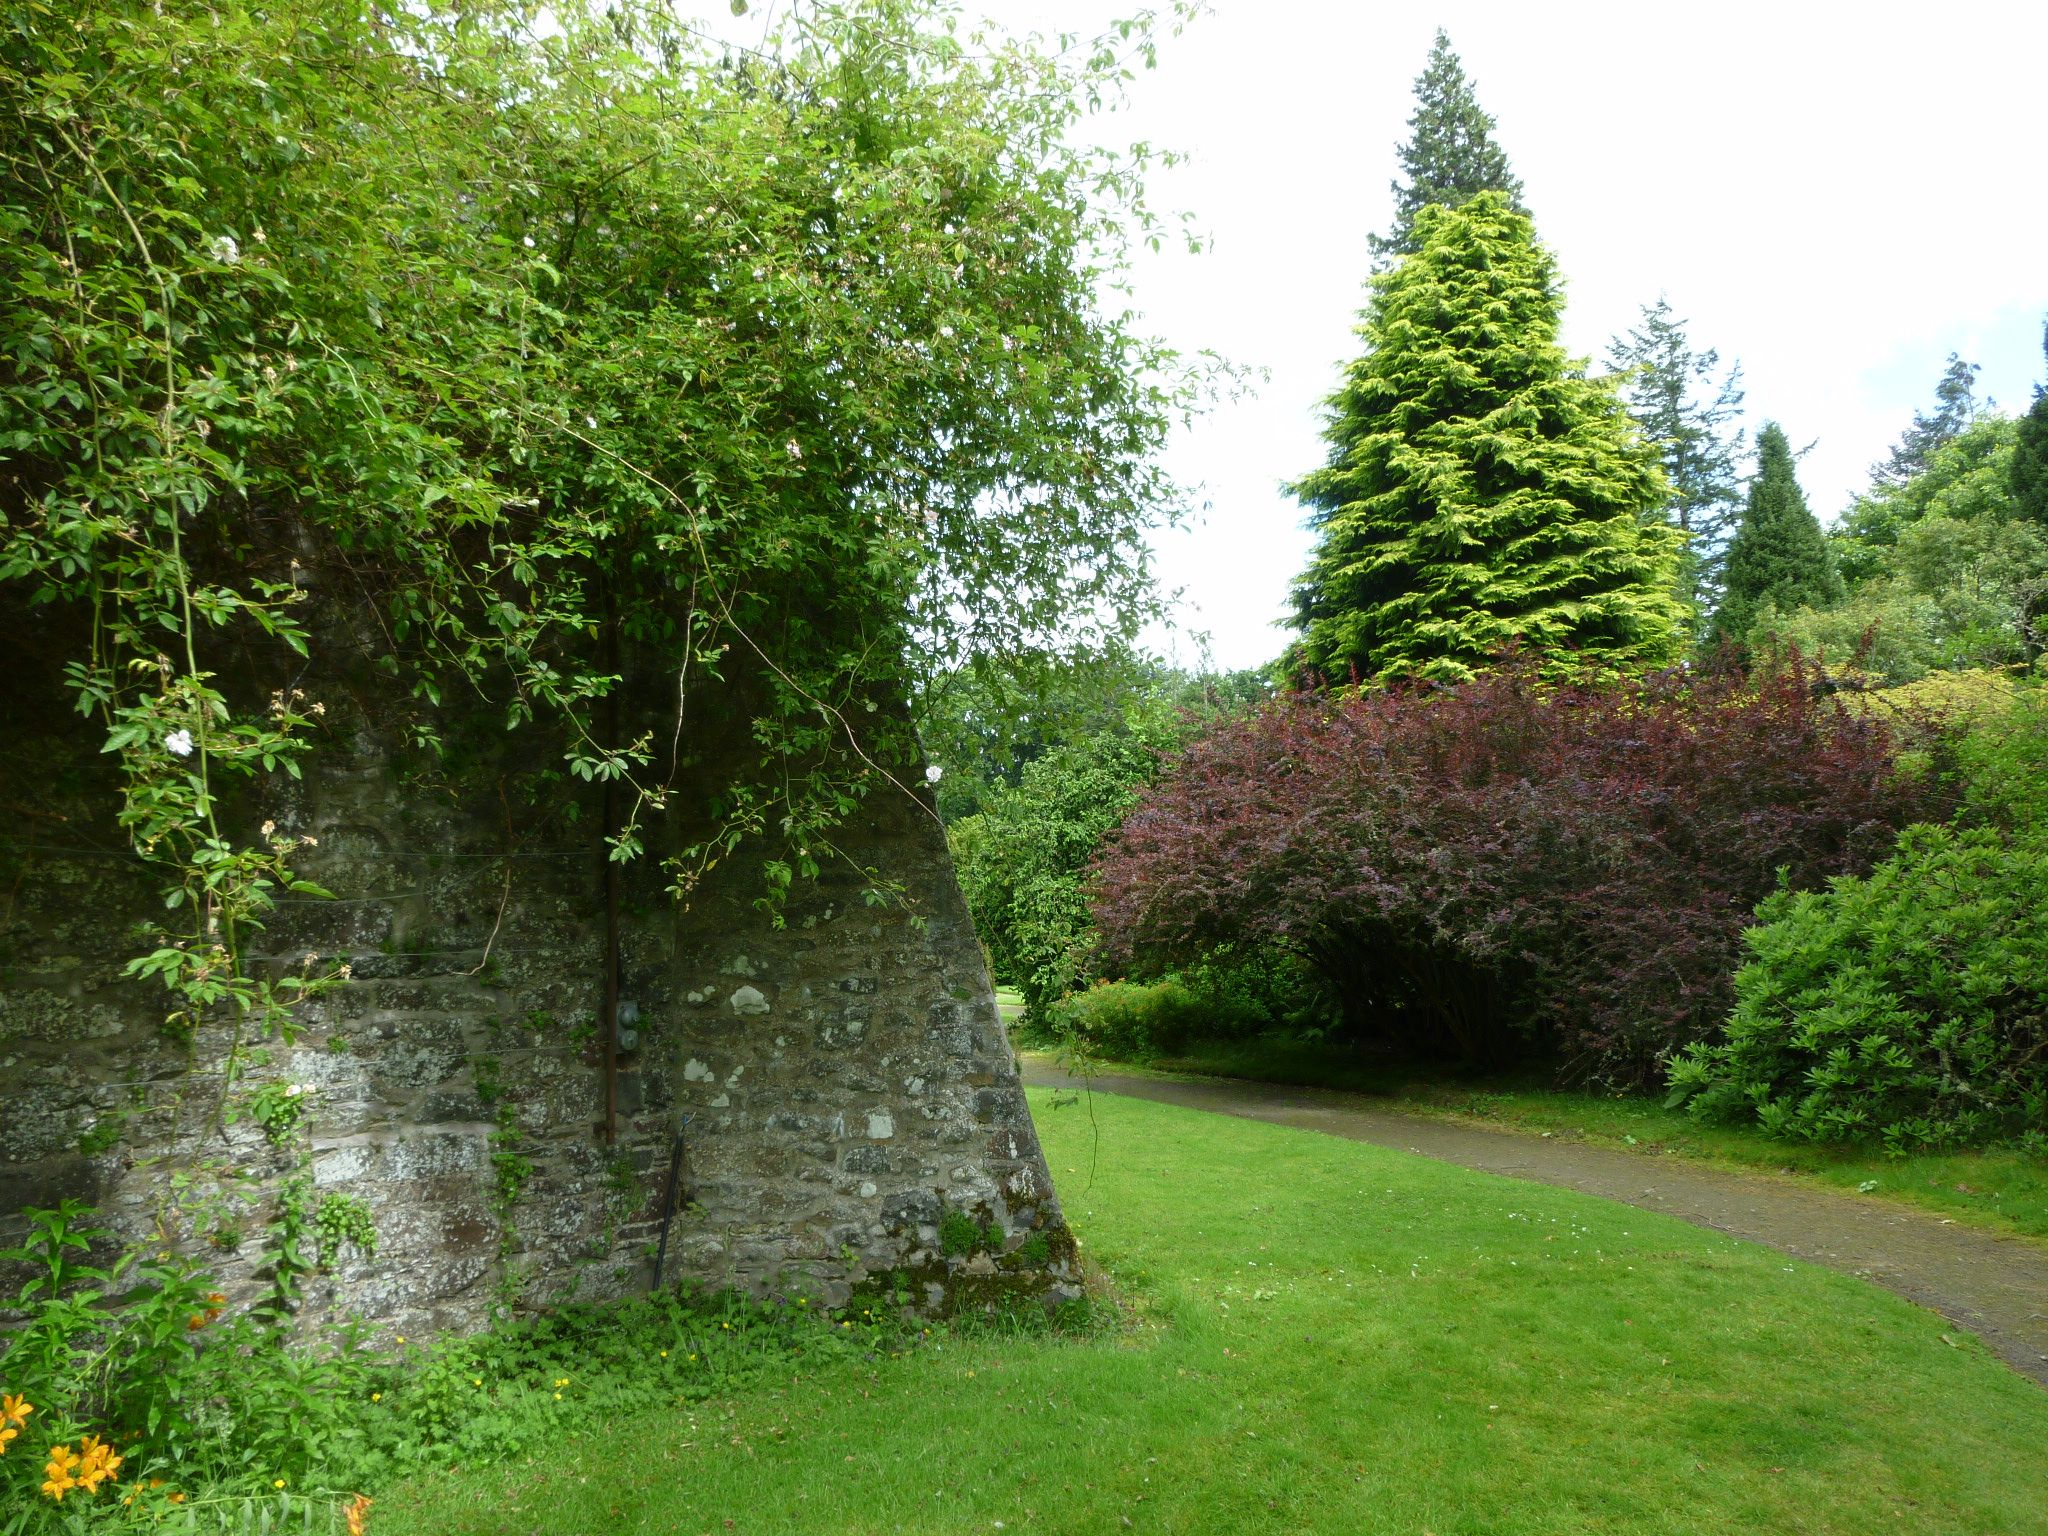 Marvelous Kailzie Gardens Scottish Borders  Scotlands Gardens  Pinterest  With Magnificent Kailzie Gardens Scottish Borders With Adorable How To Make A Garden Shed Also Garden Candle Stakes In Addition Endsleigh Garden And Garden Chest Storage As Well As Garden Flowers Az Additionally Christies Garden Centre From Itpinterestcom With   Magnificent Kailzie Gardens Scottish Borders  Scotlands Gardens  Pinterest  With Adorable Kailzie Gardens Scottish Borders And Marvelous How To Make A Garden Shed Also Garden Candle Stakes In Addition Endsleigh Garden From Itpinterestcom